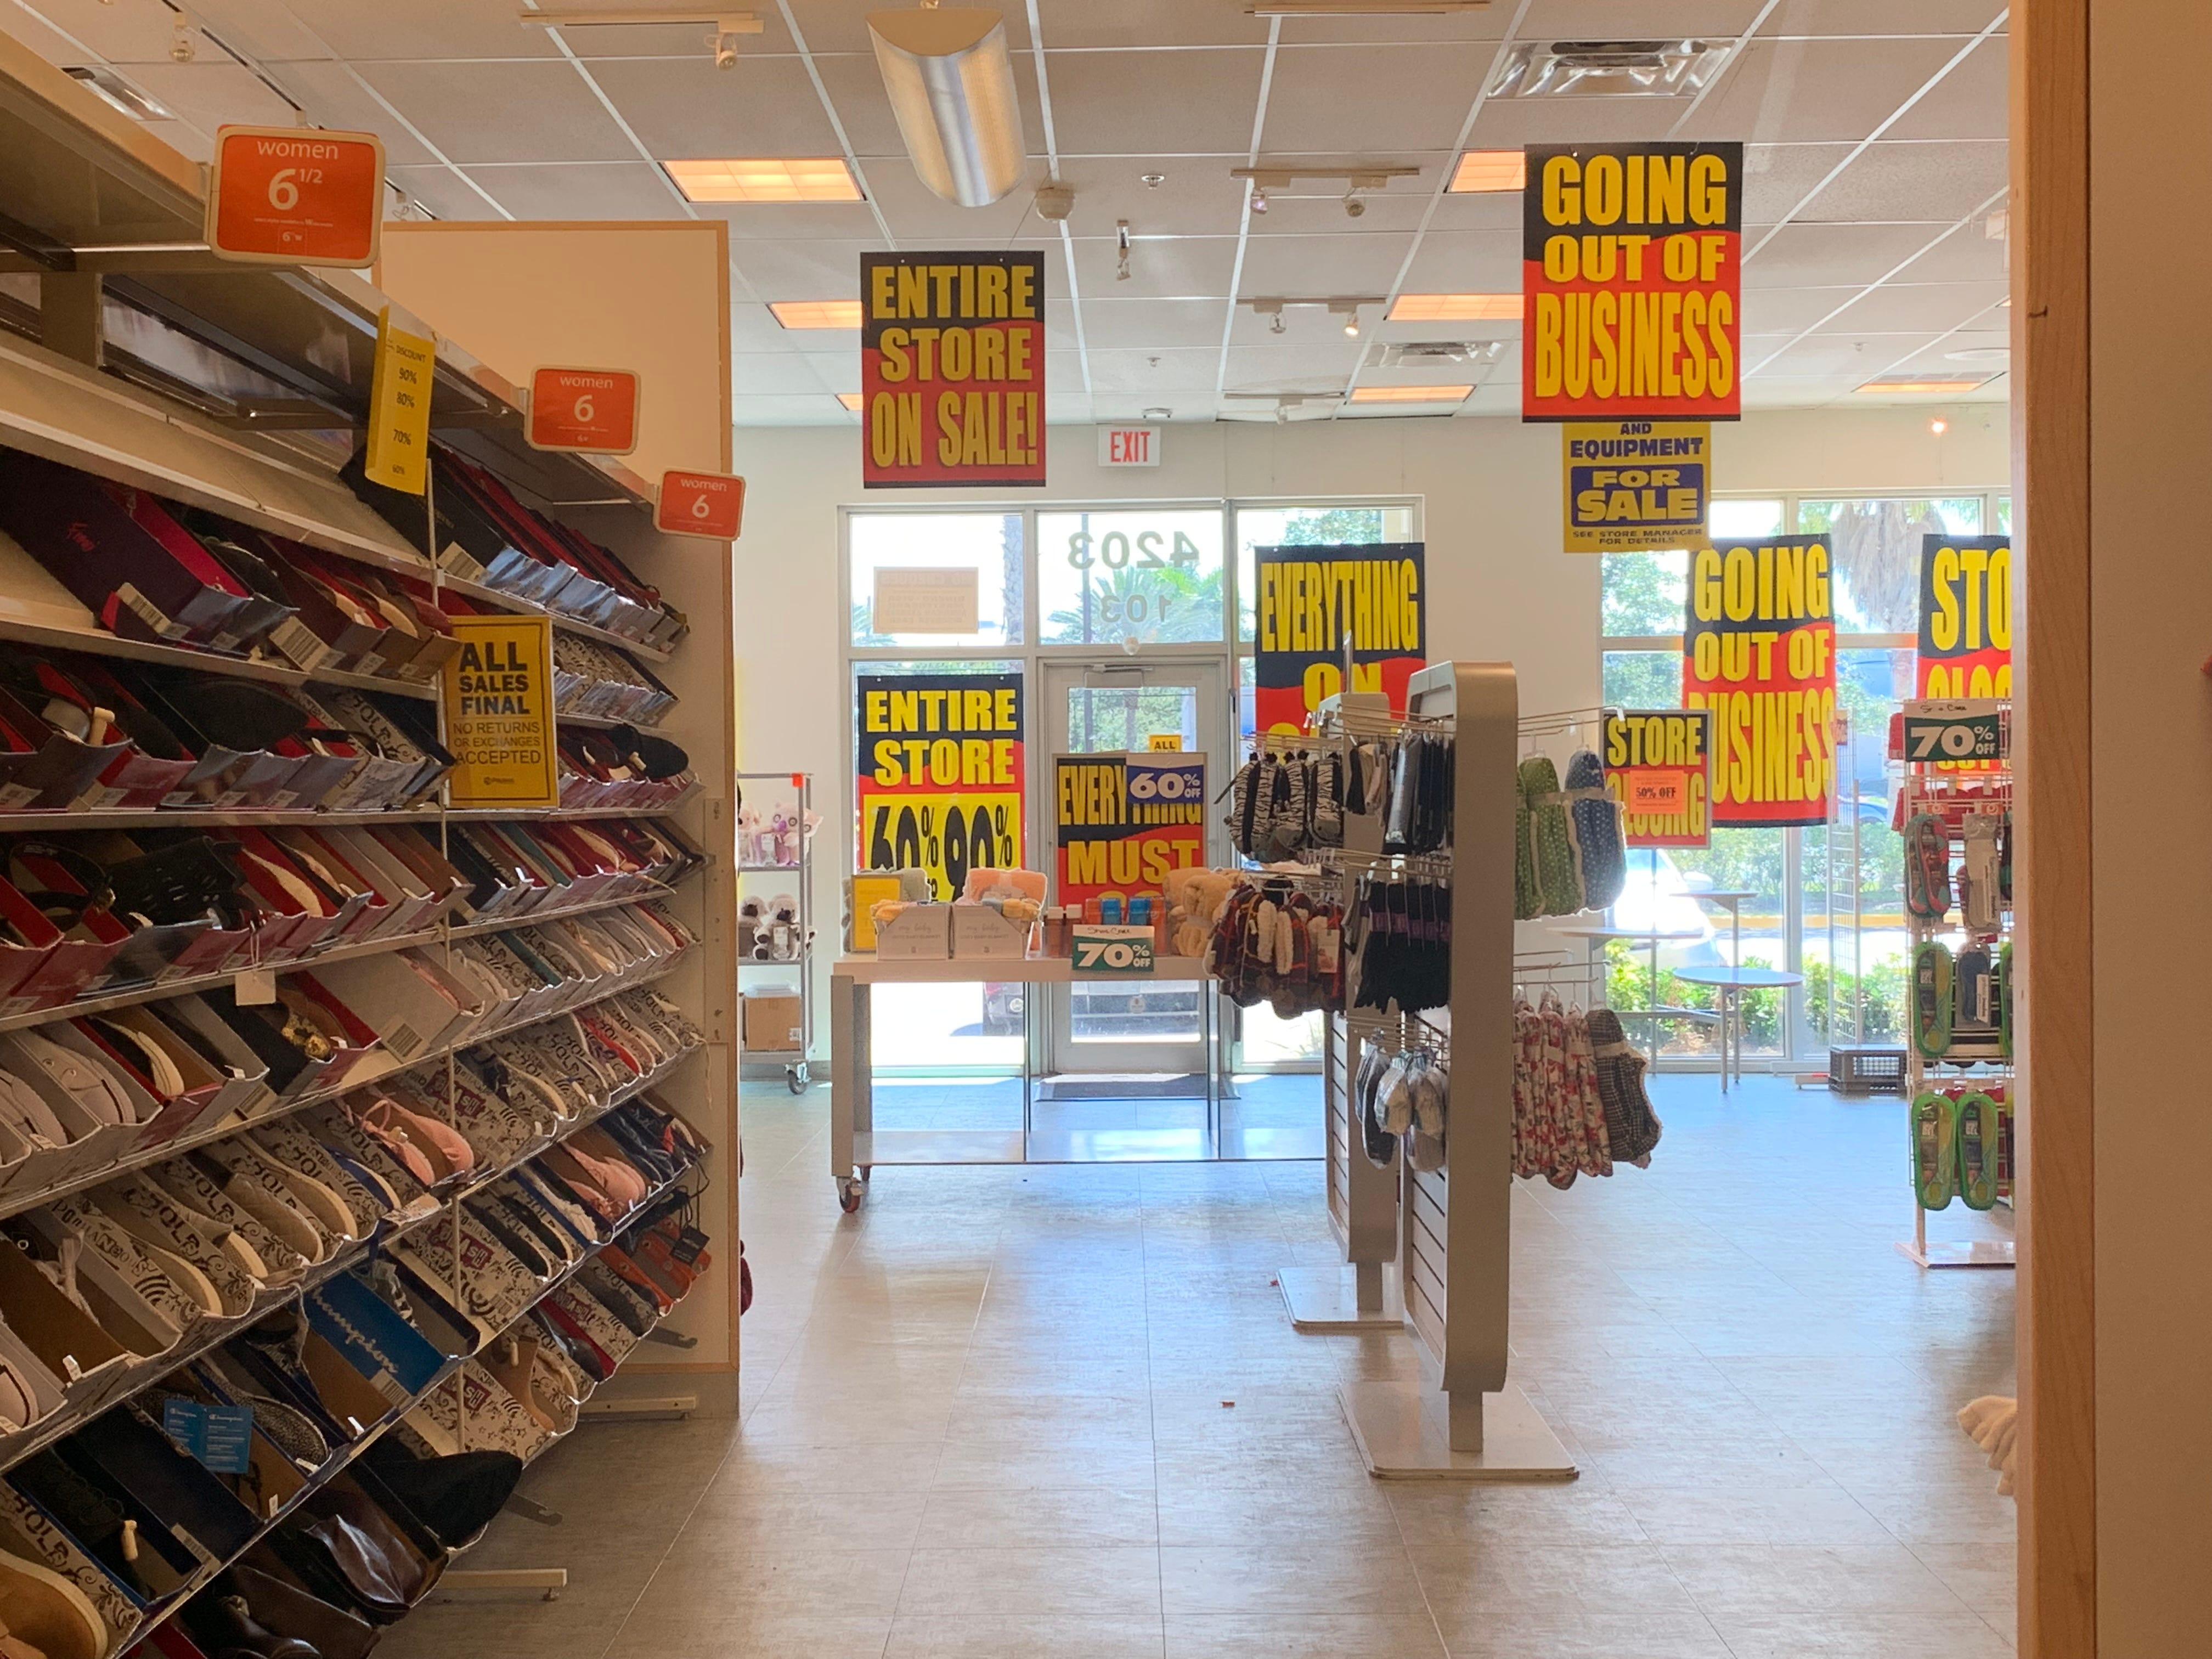 Payless Shoes closing 2019: All US